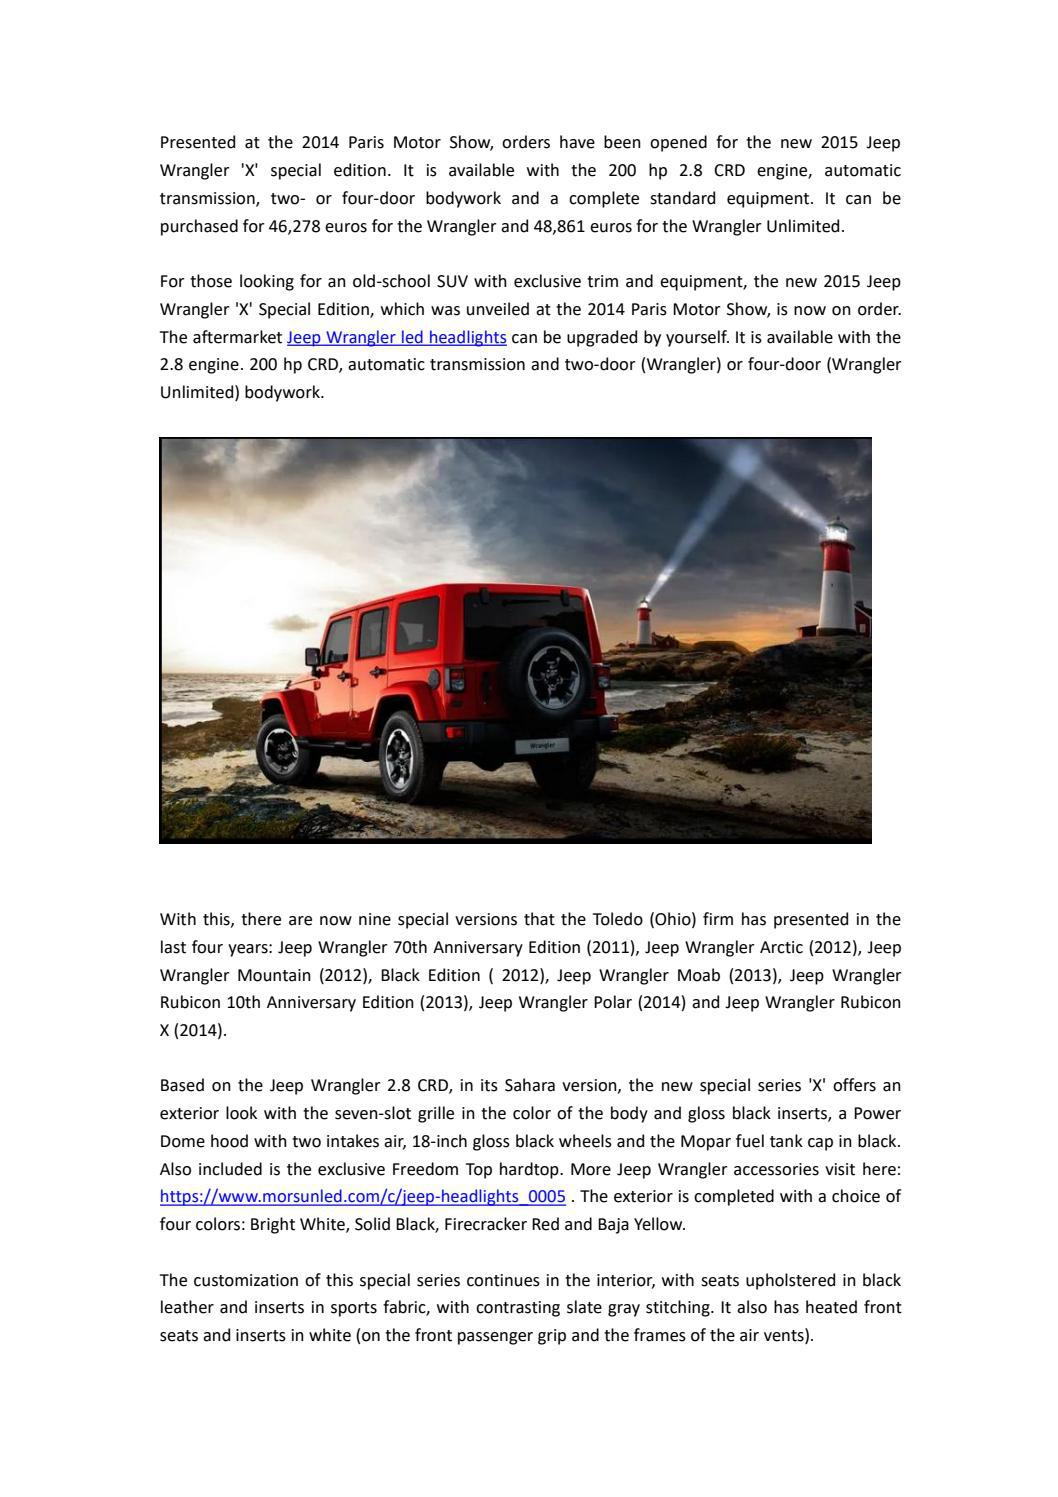 New Special Edition Jeep Wrangler X